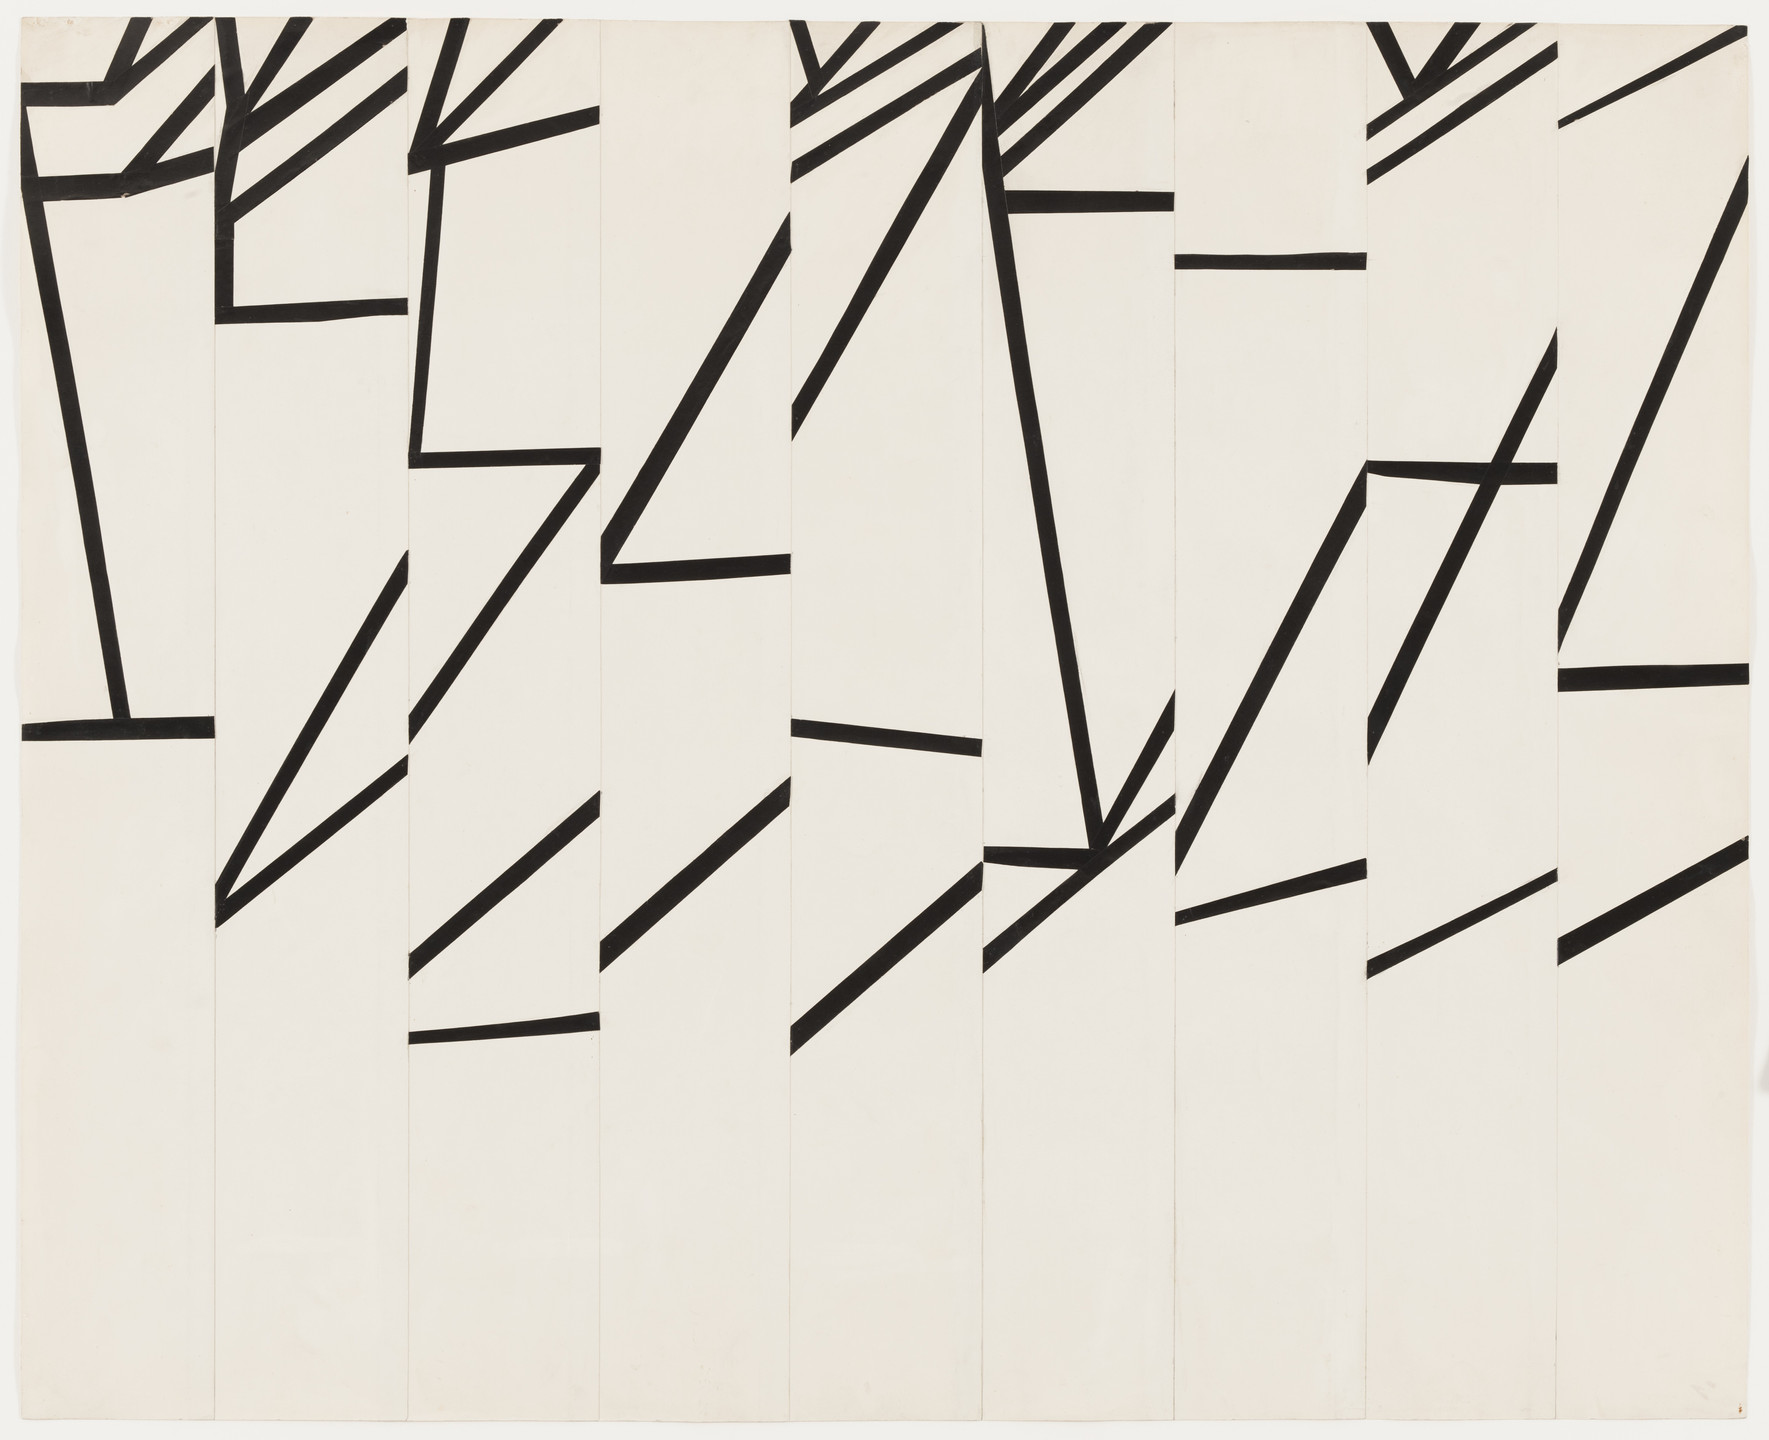 Ellsworth Kelly. Study for La Combe II. 1950